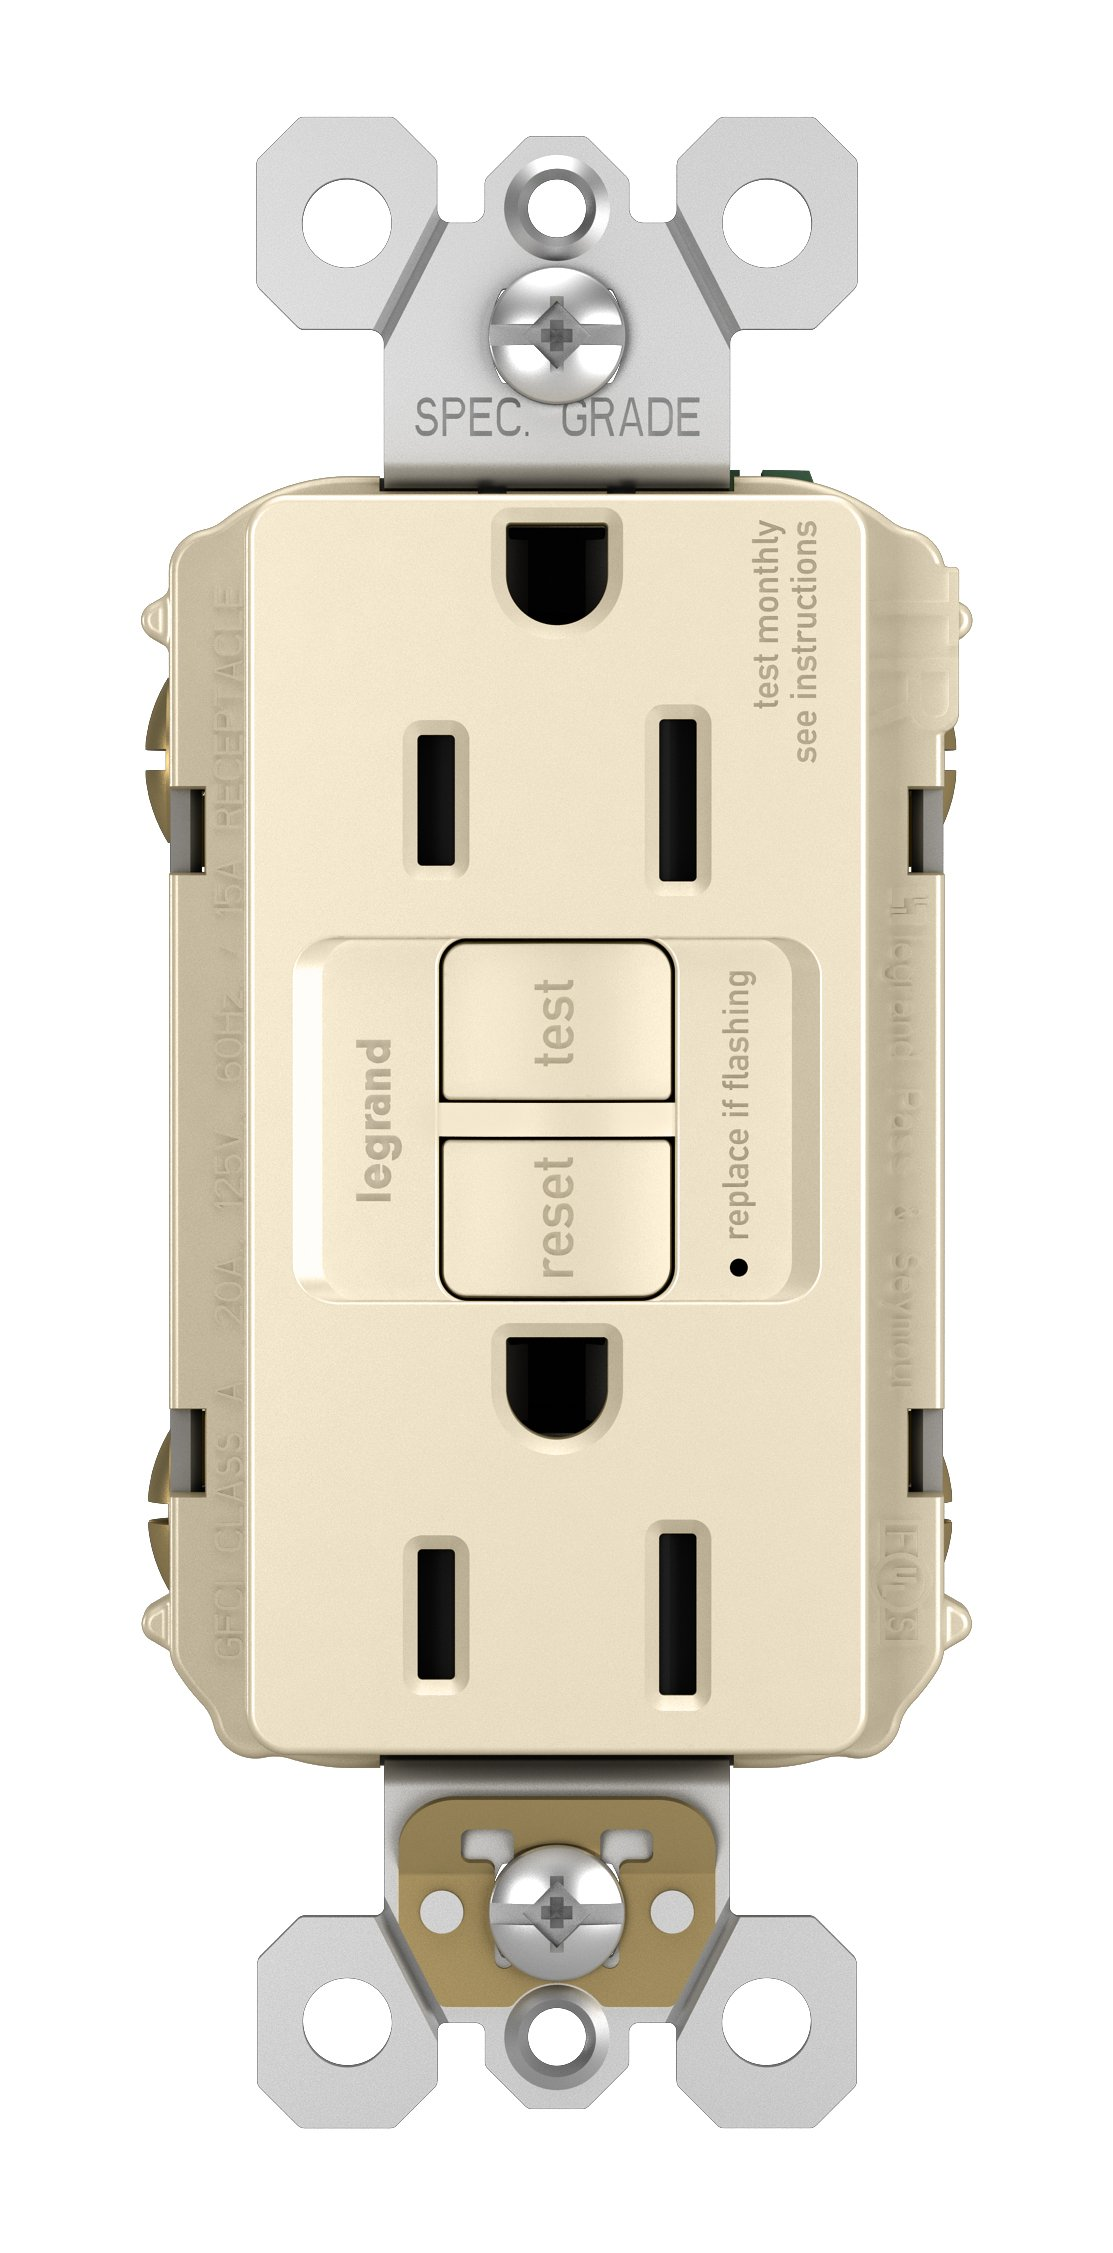 Legrand-Pass & Seymour 1597TRLACC4 Self-Test GFCI Receptacle Outlet with Wall Plate, 15Amp 125V, Light Almond